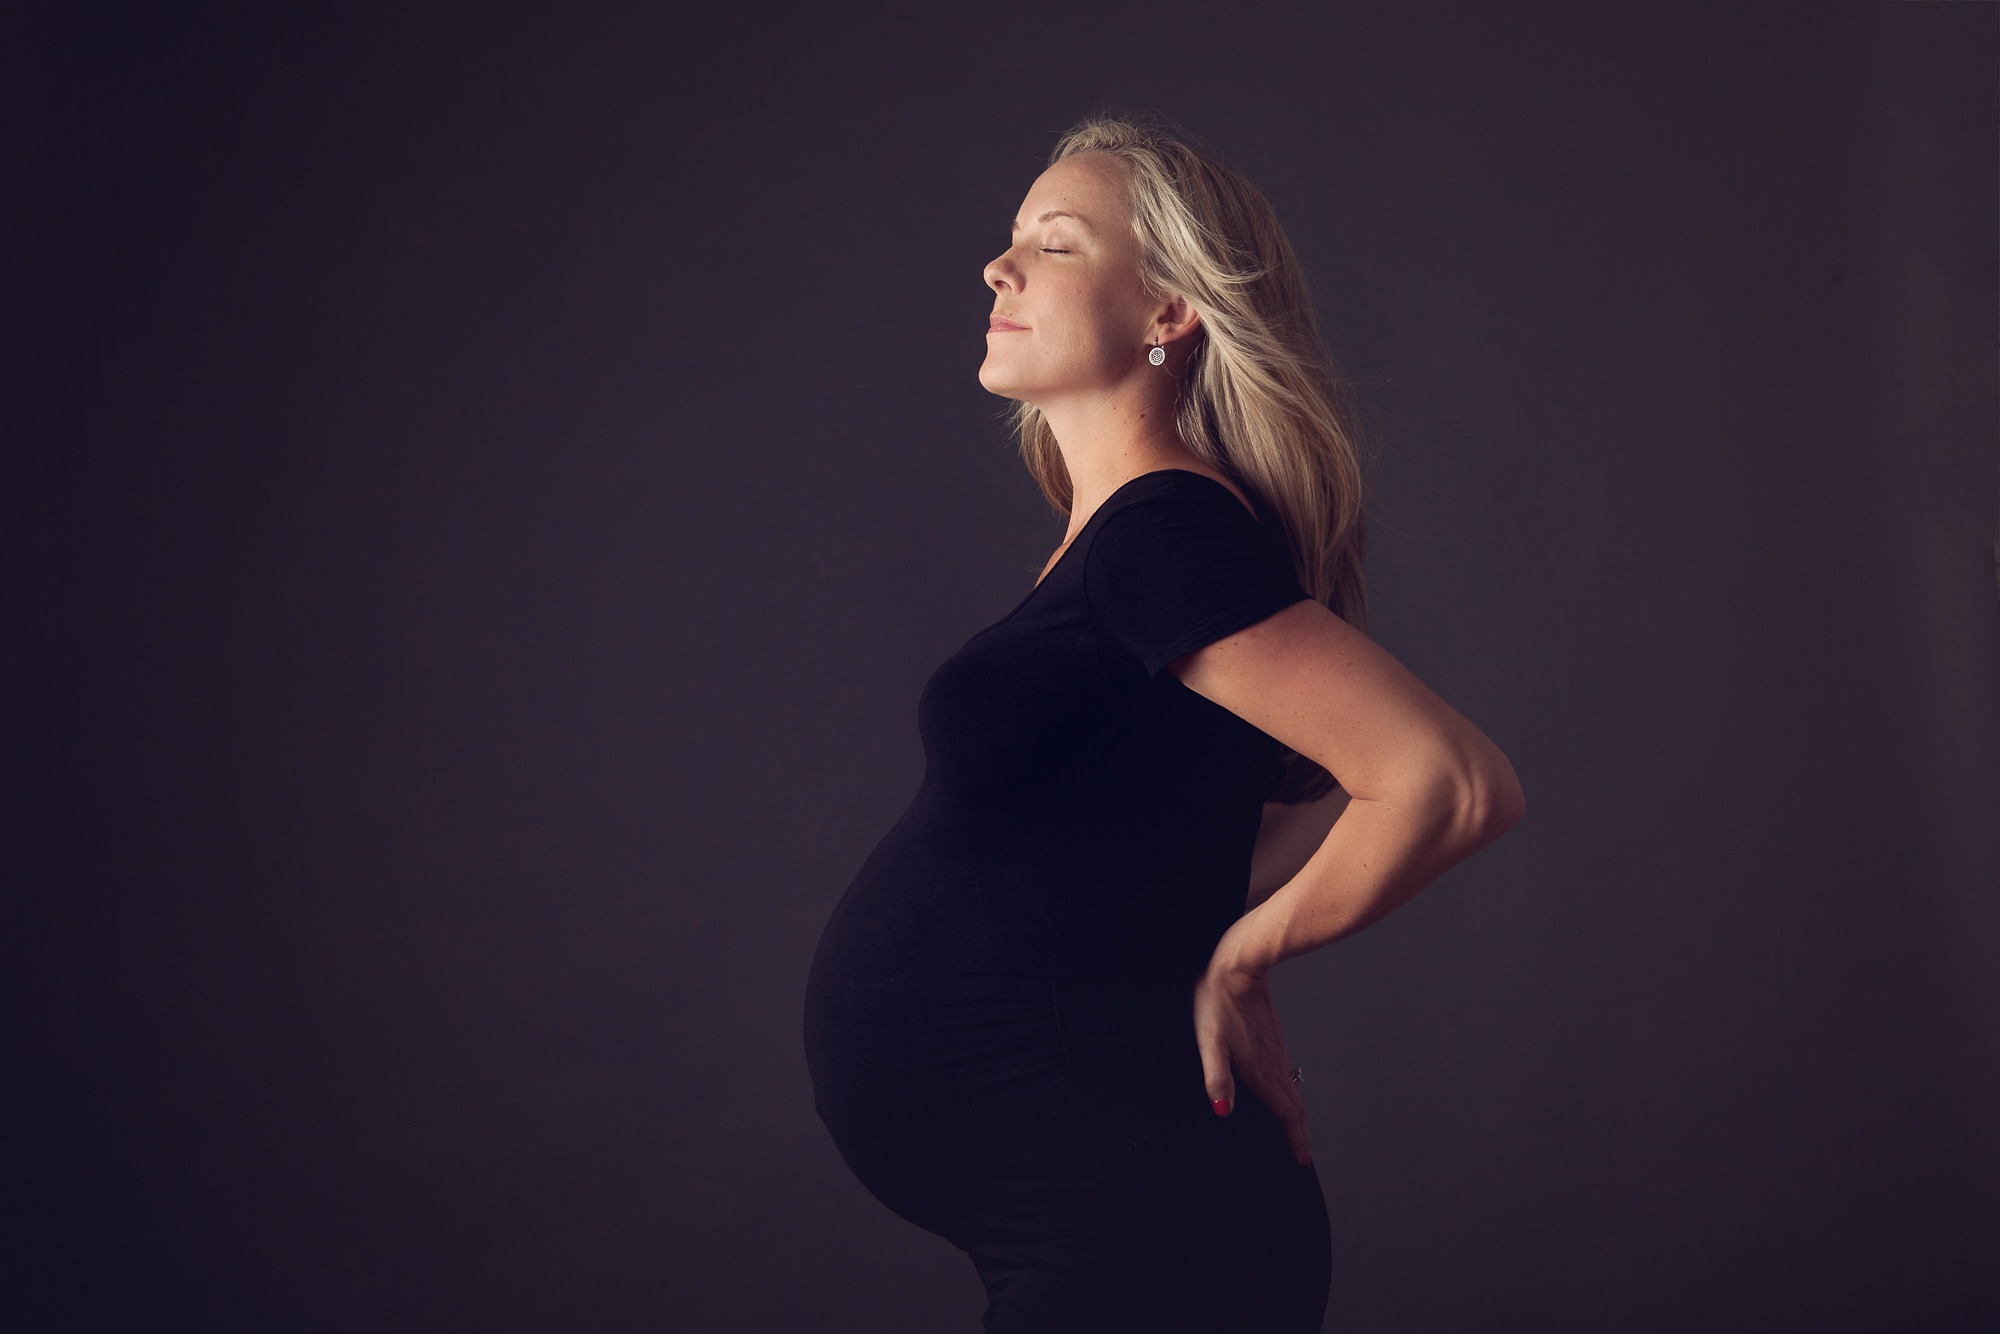 Maternity portrait studio session of a mother in a black dress